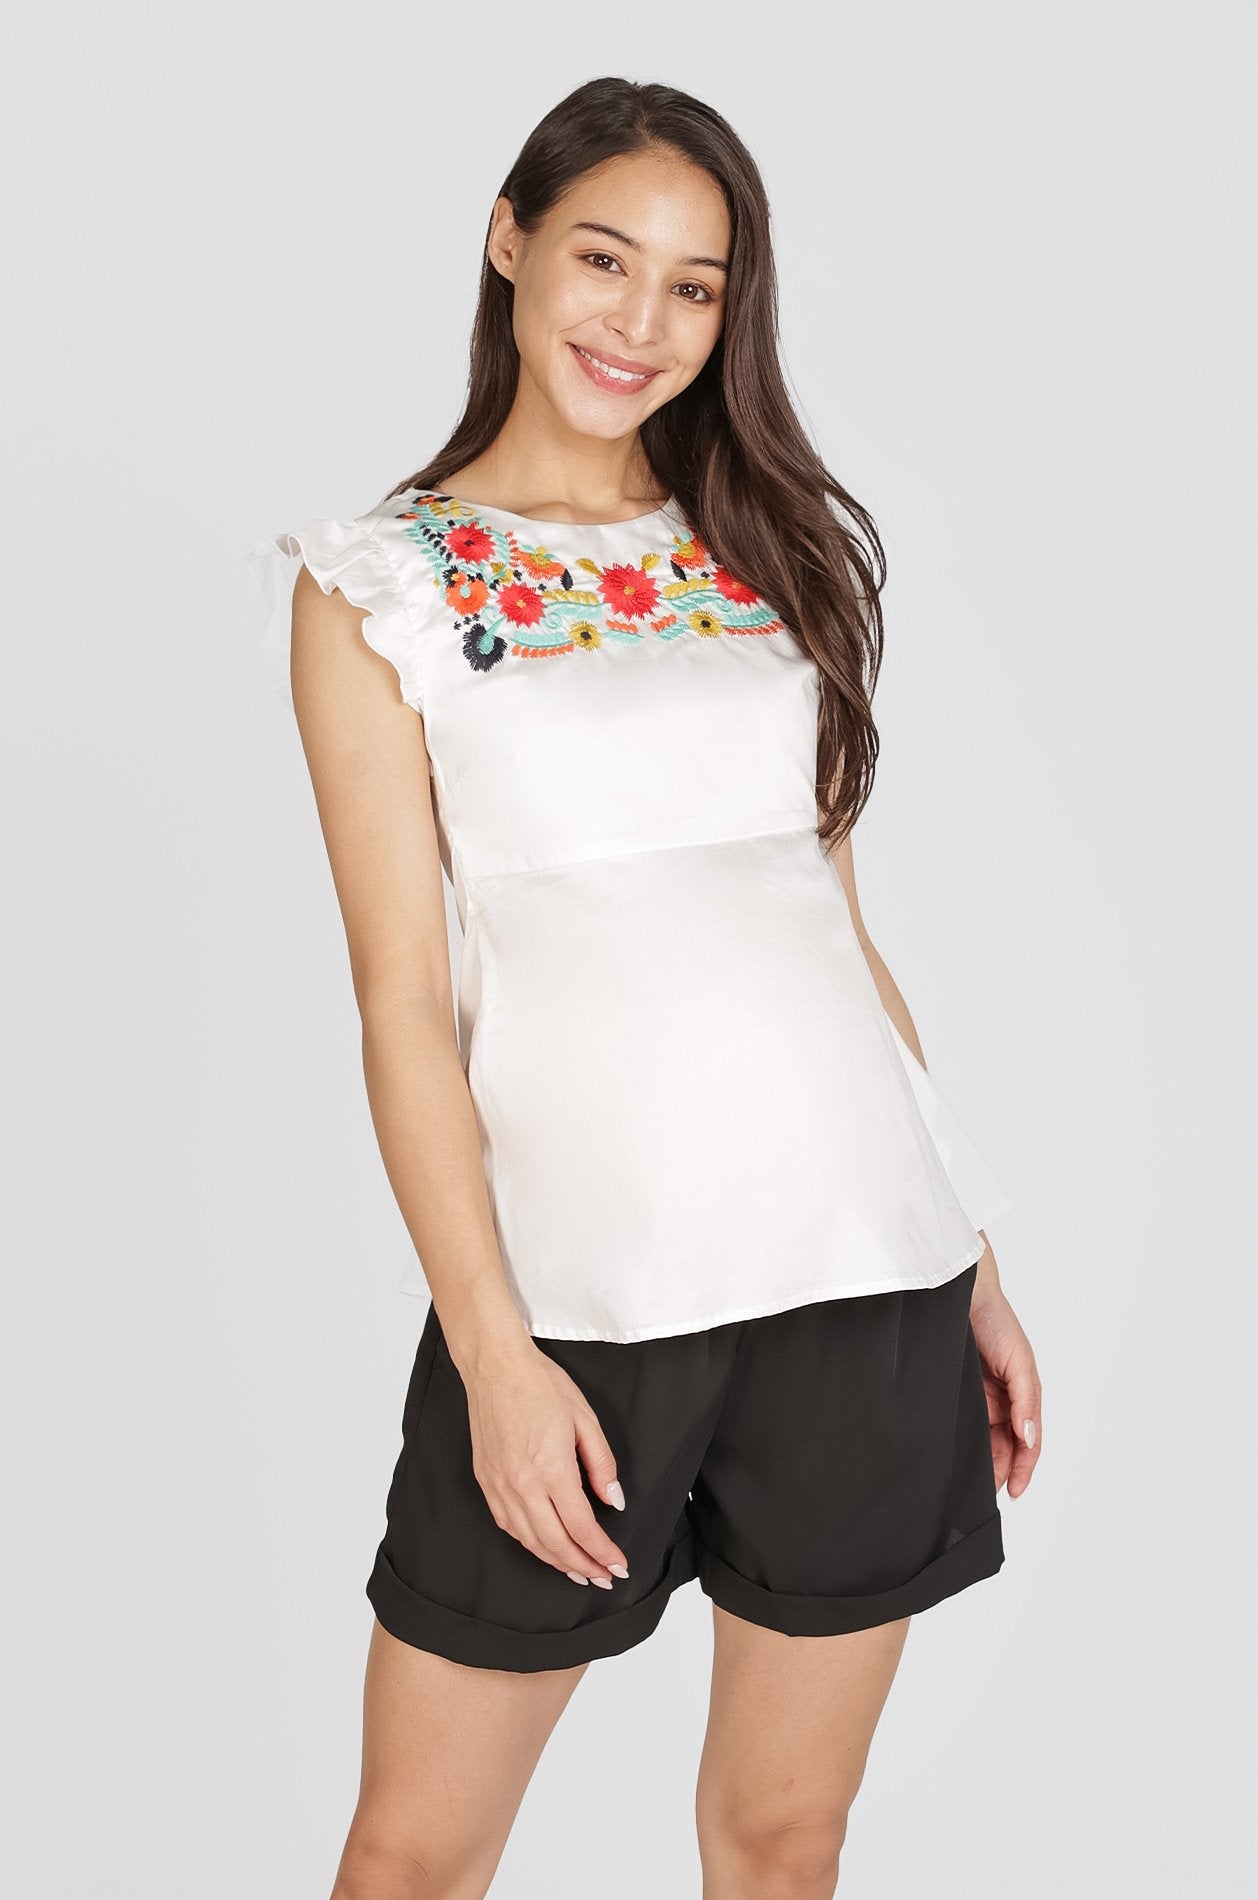 Leya Embroidered Nursing Top Nursing Wear Jump Eat Cry